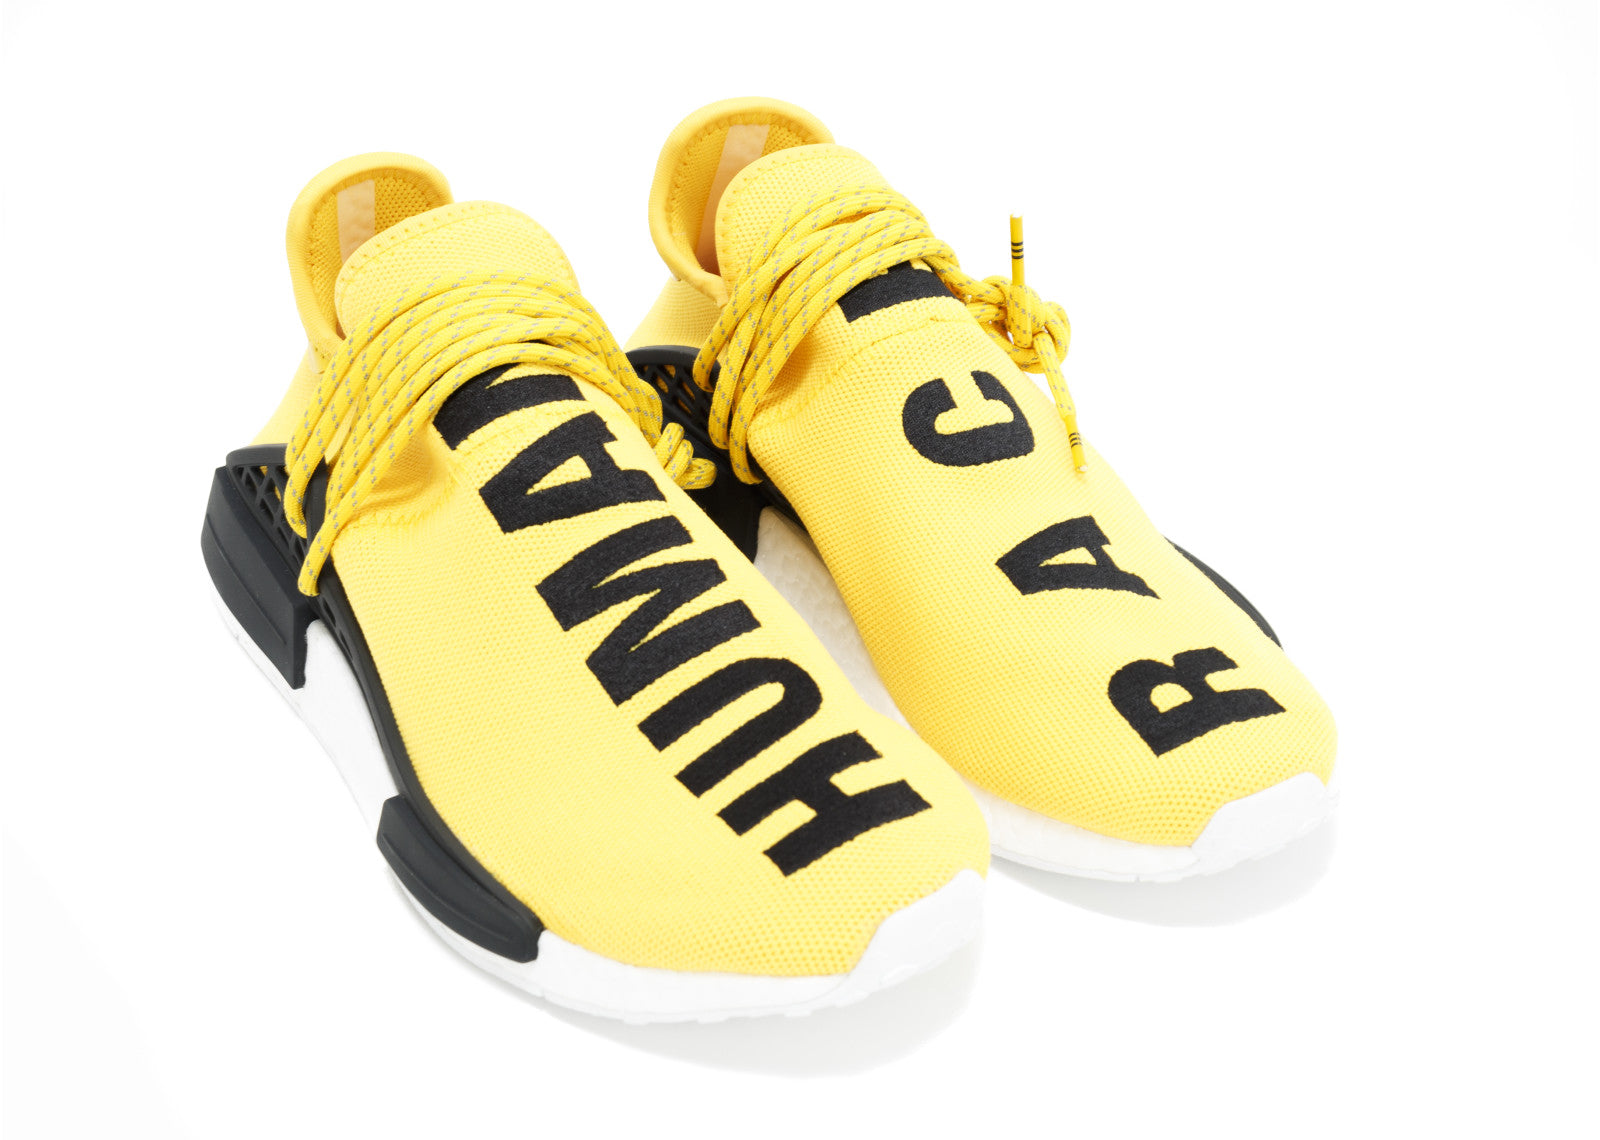 Pharrell williams x adidas razza umana nmd